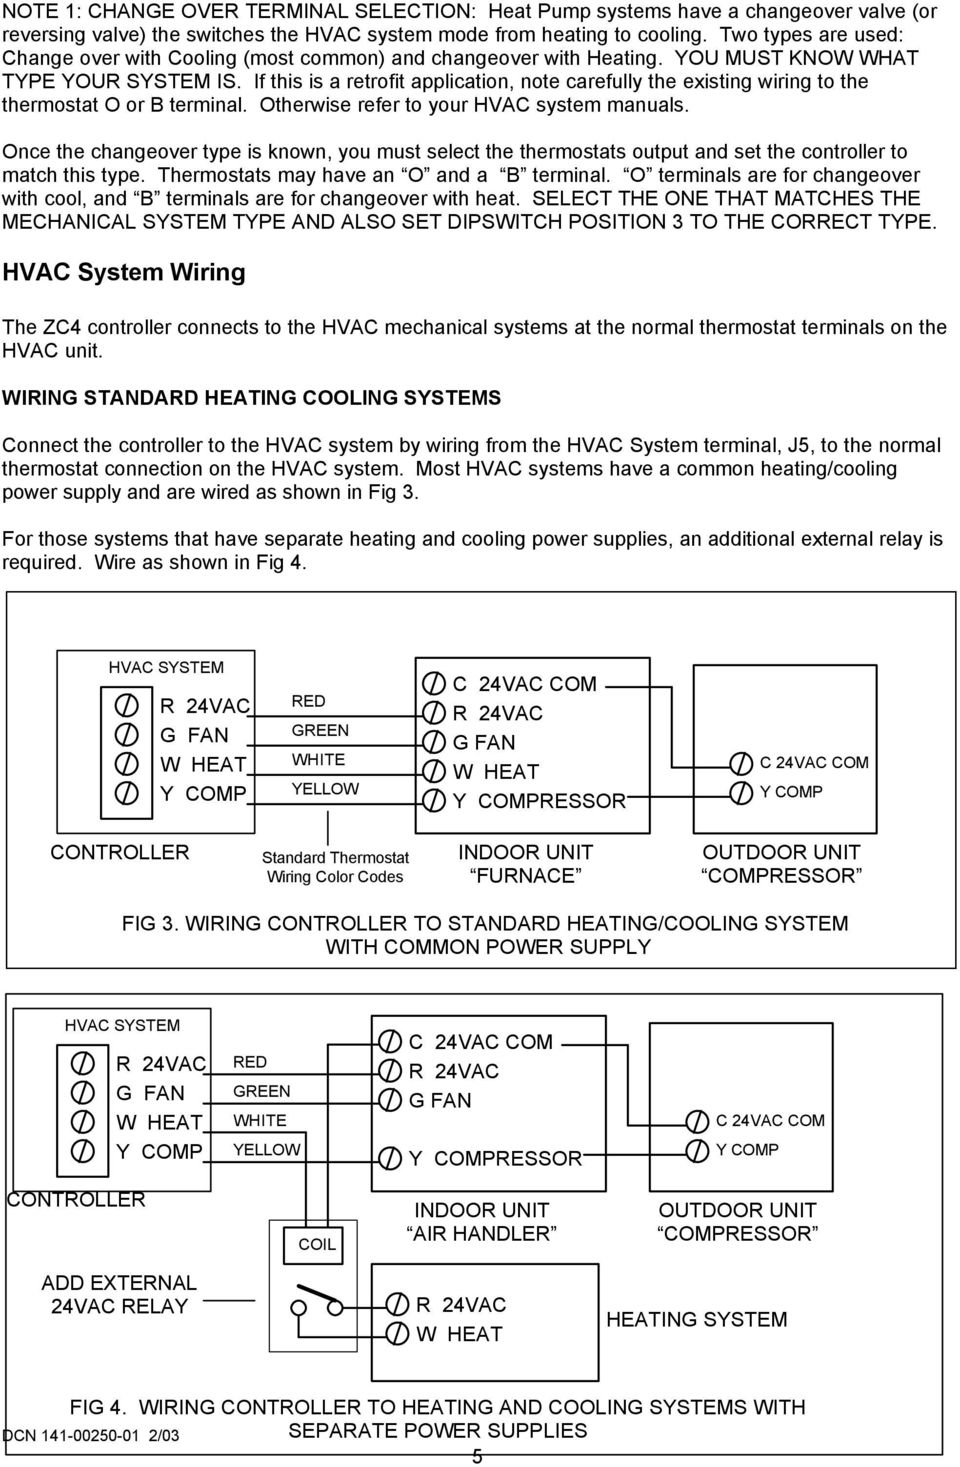 Wiring A Furnace Switch J5 Circuit Diagram Schematic. Installation And Operation Manual Pdf Furnace Switch Regulator Wiring A J5. Wiring. J5 Furnas Switch Wiring Diagram At Scoala.co